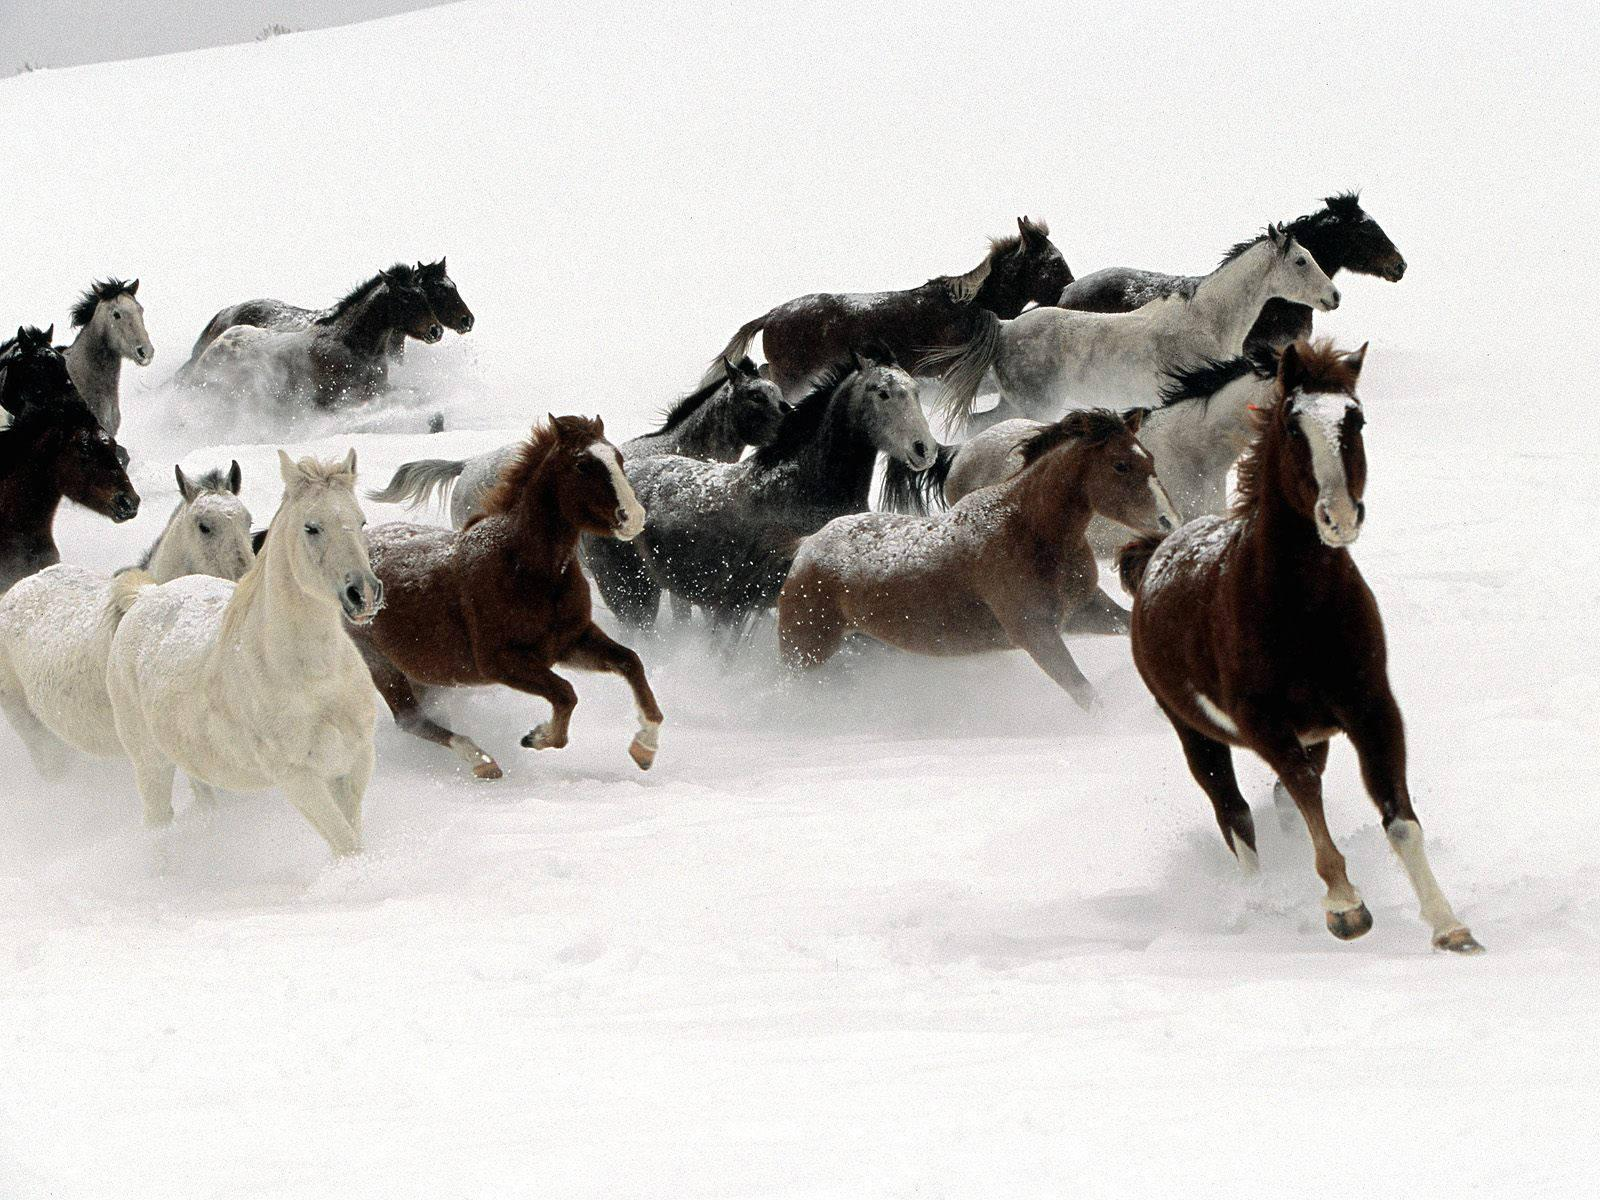 Horse Wallpapers in HD - Barbaras HD Wallpapers